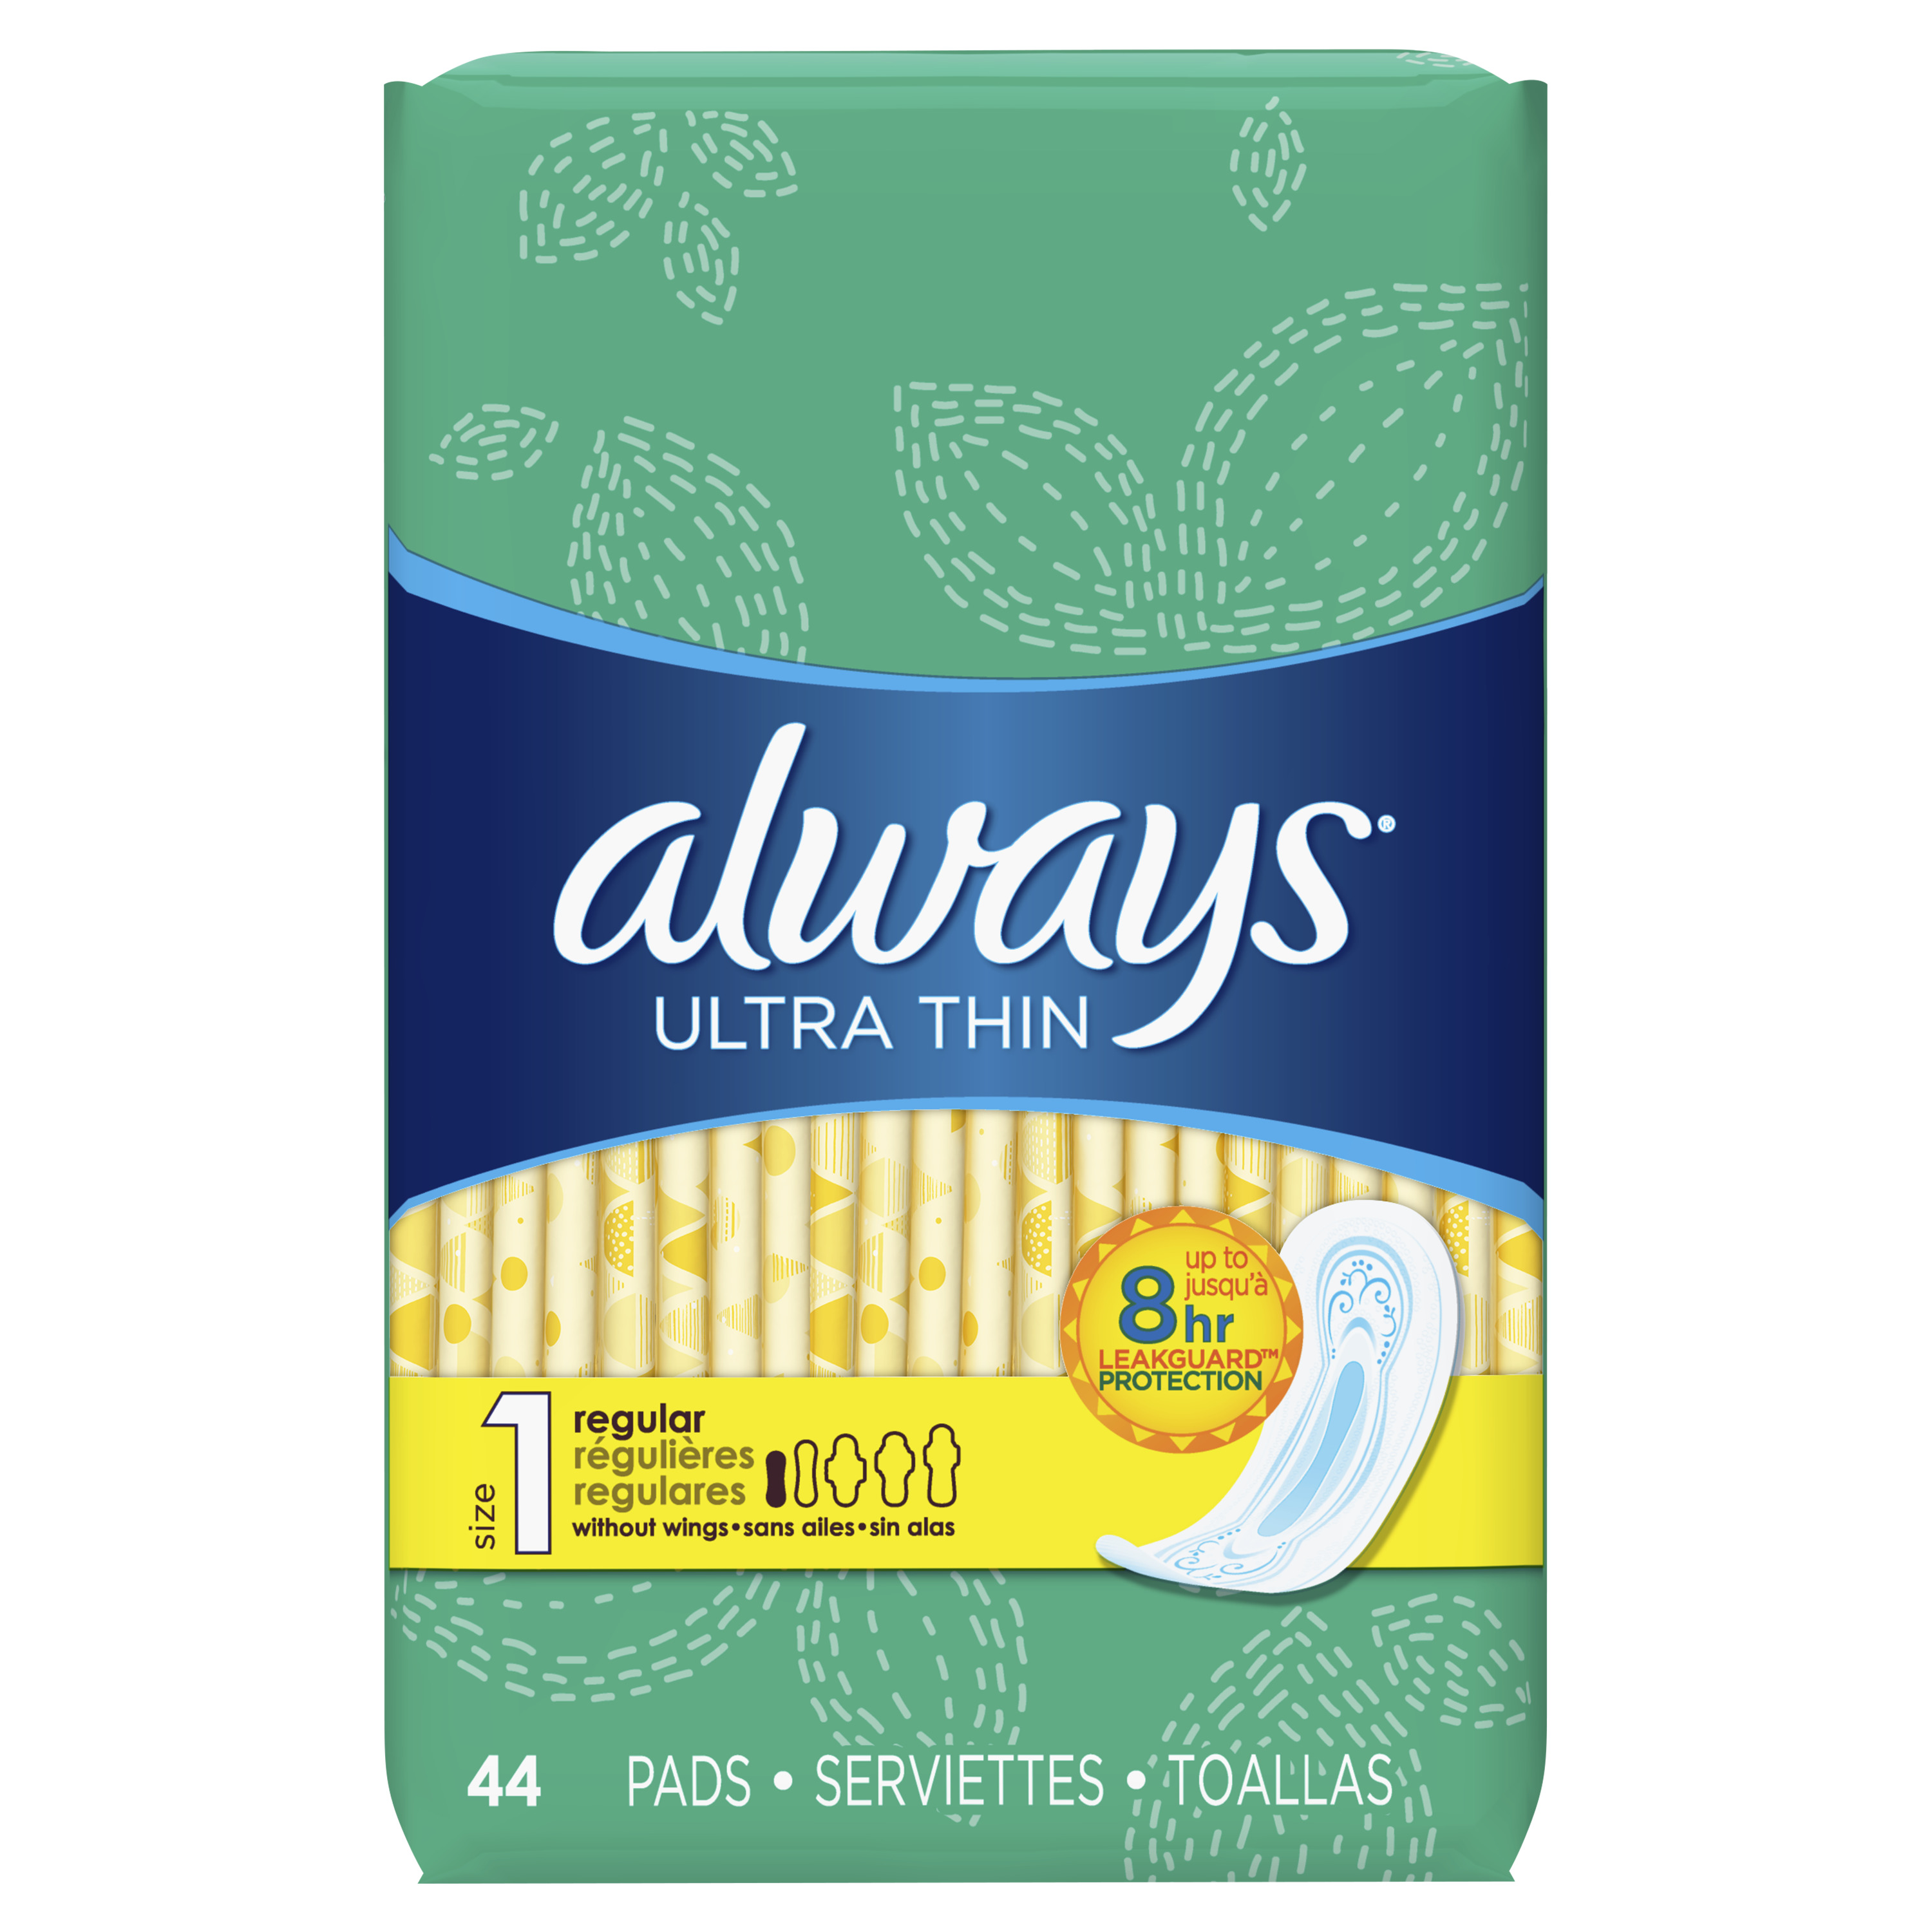 Always Ultra Thin, Size 1, Regular Pads, Unscented 44 Count